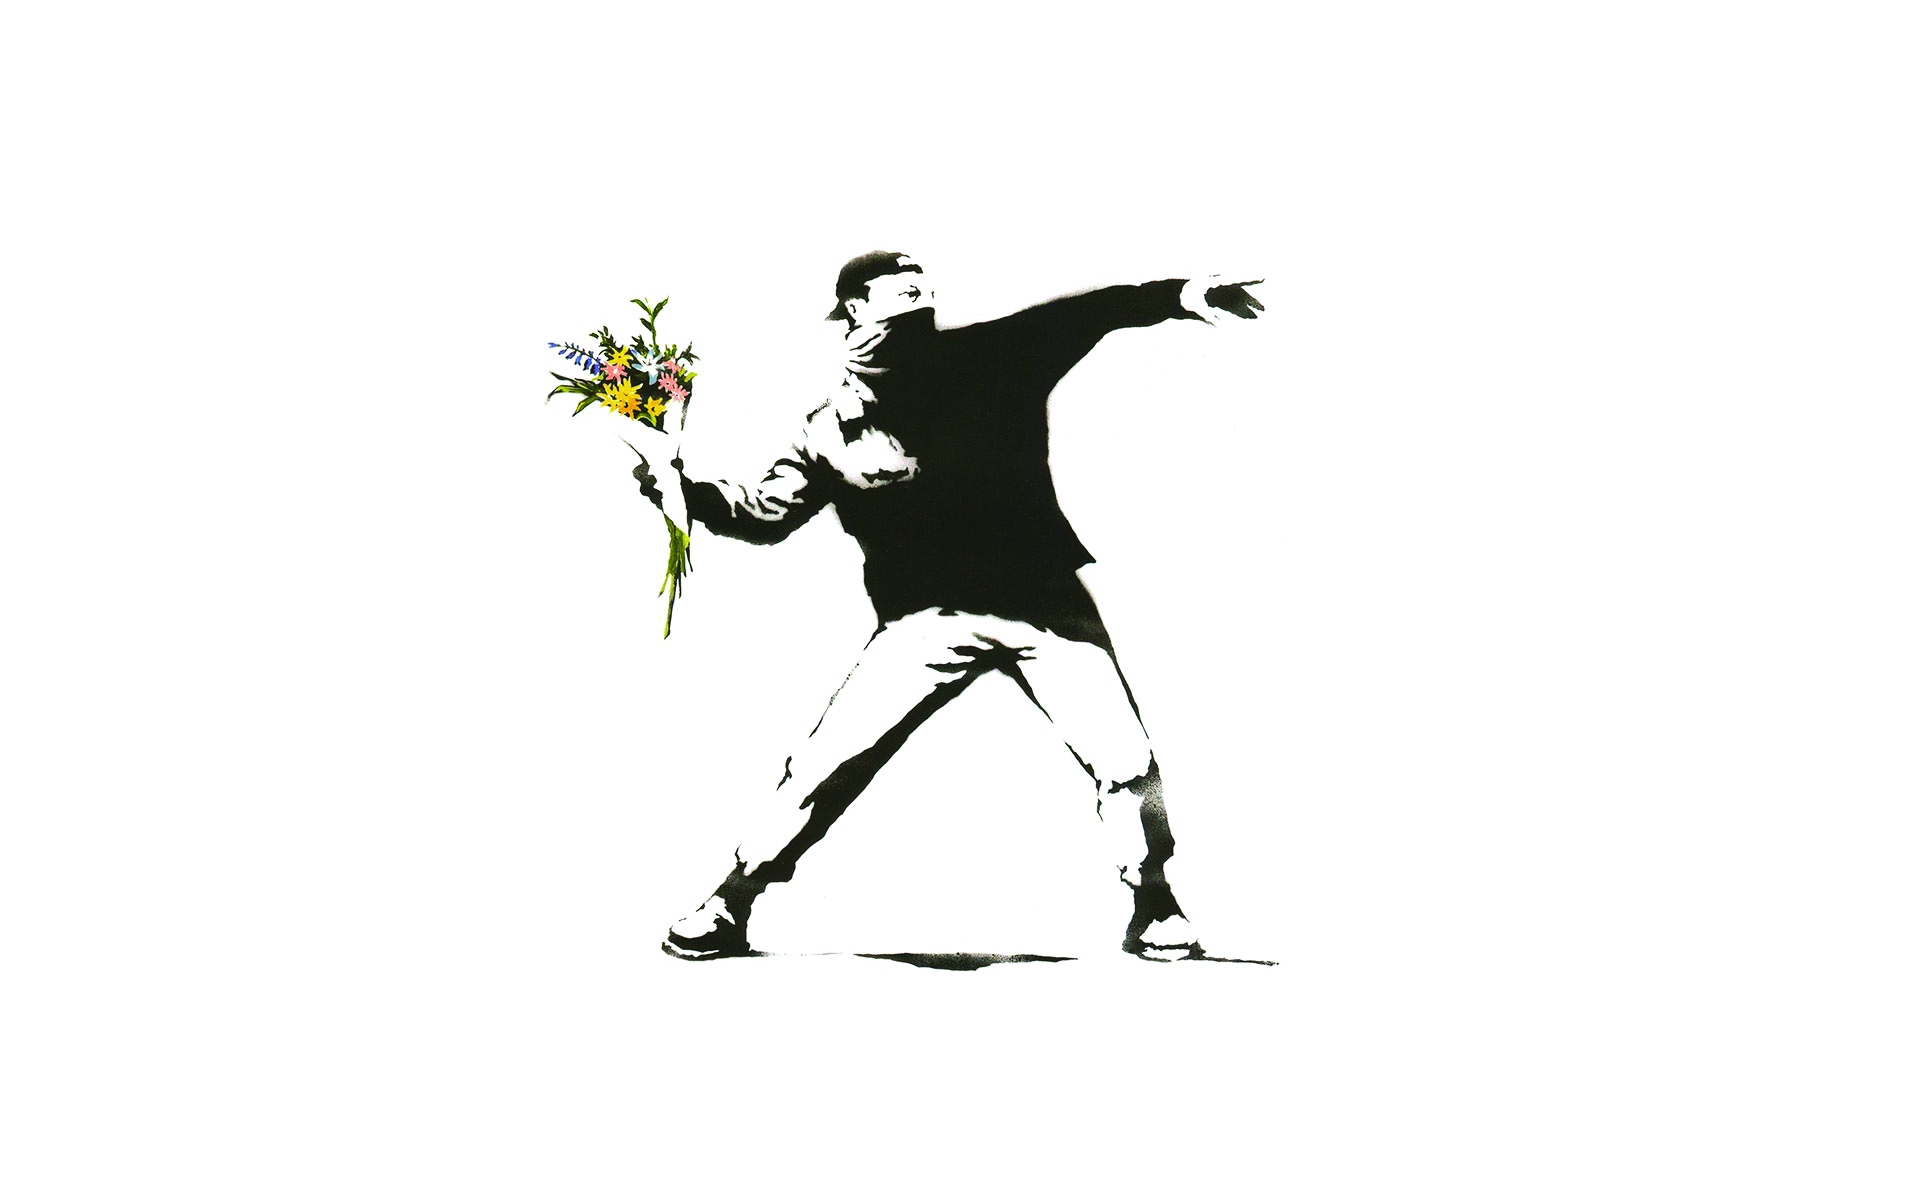 Flower Thrower Banksy